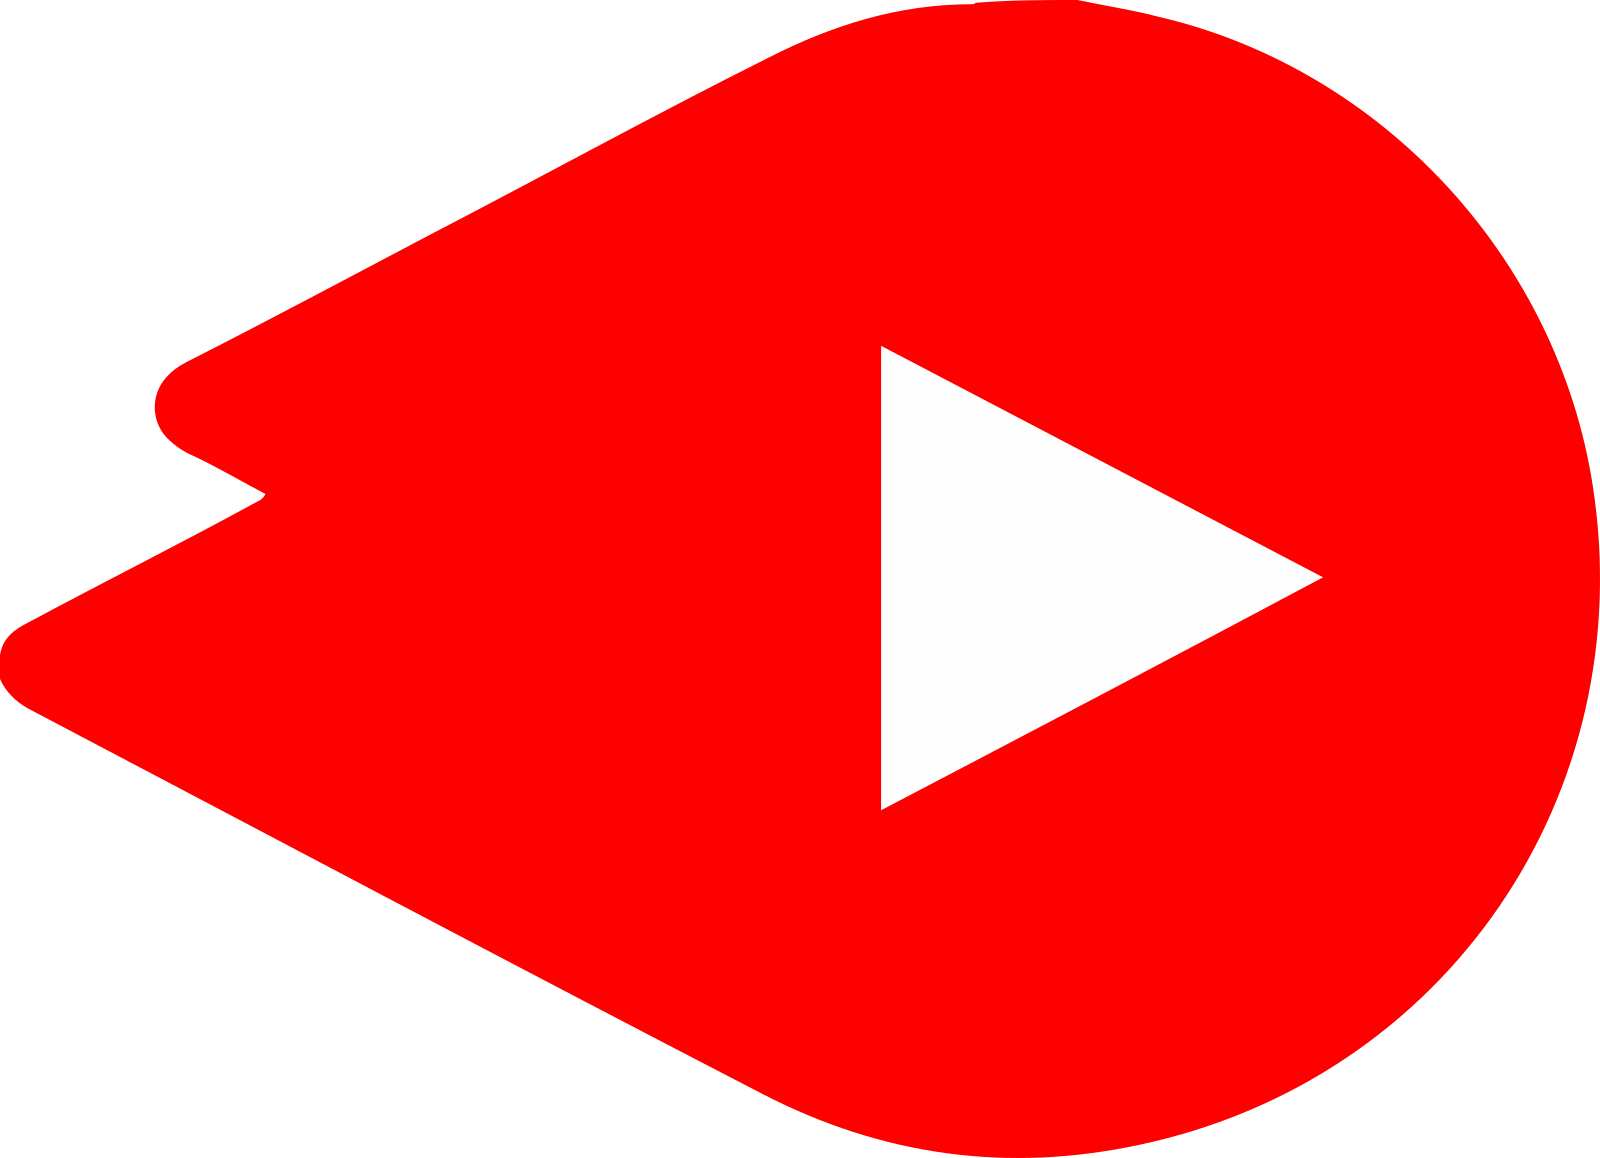 Youtube Go logo.